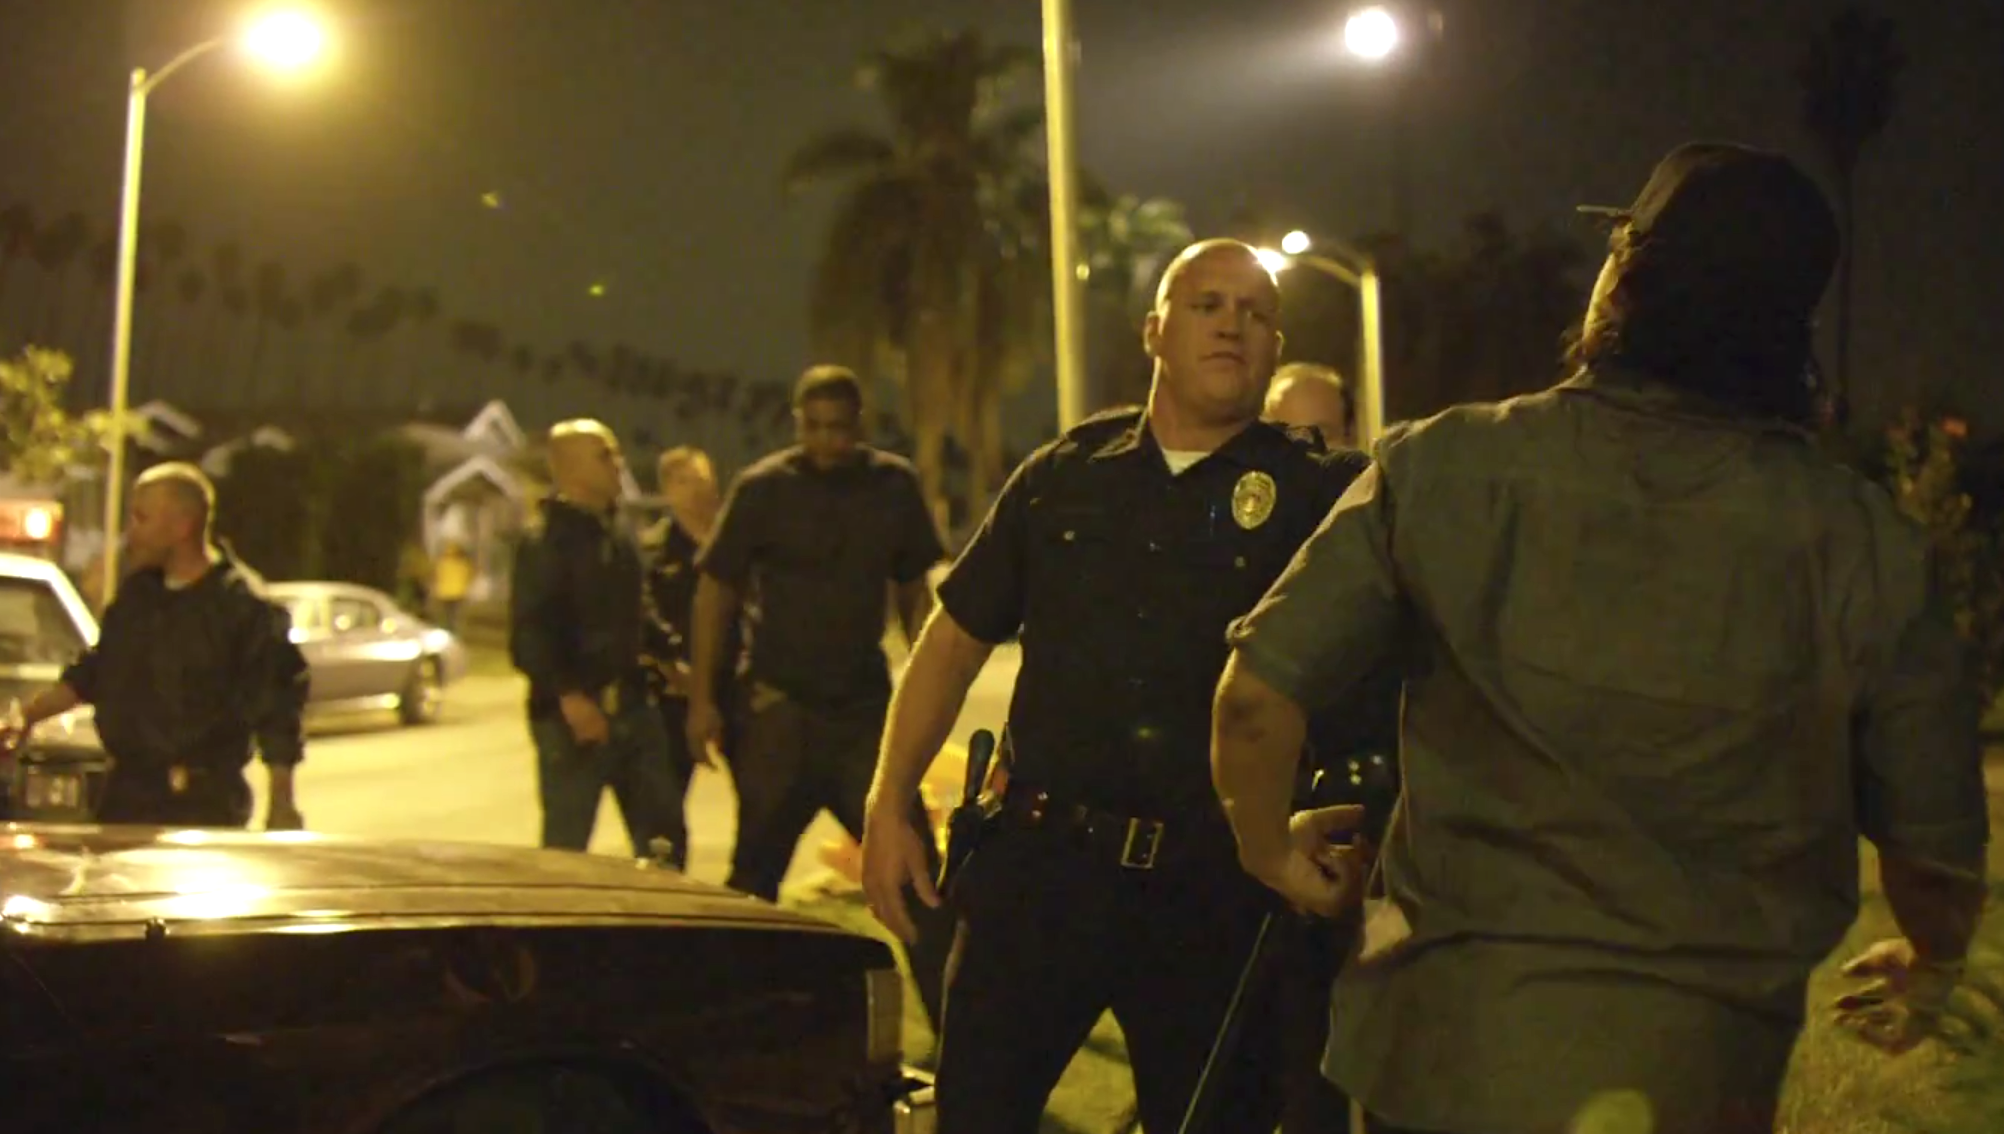 Police and members of NWA glare at each other in a scene from Straight Outta Compton